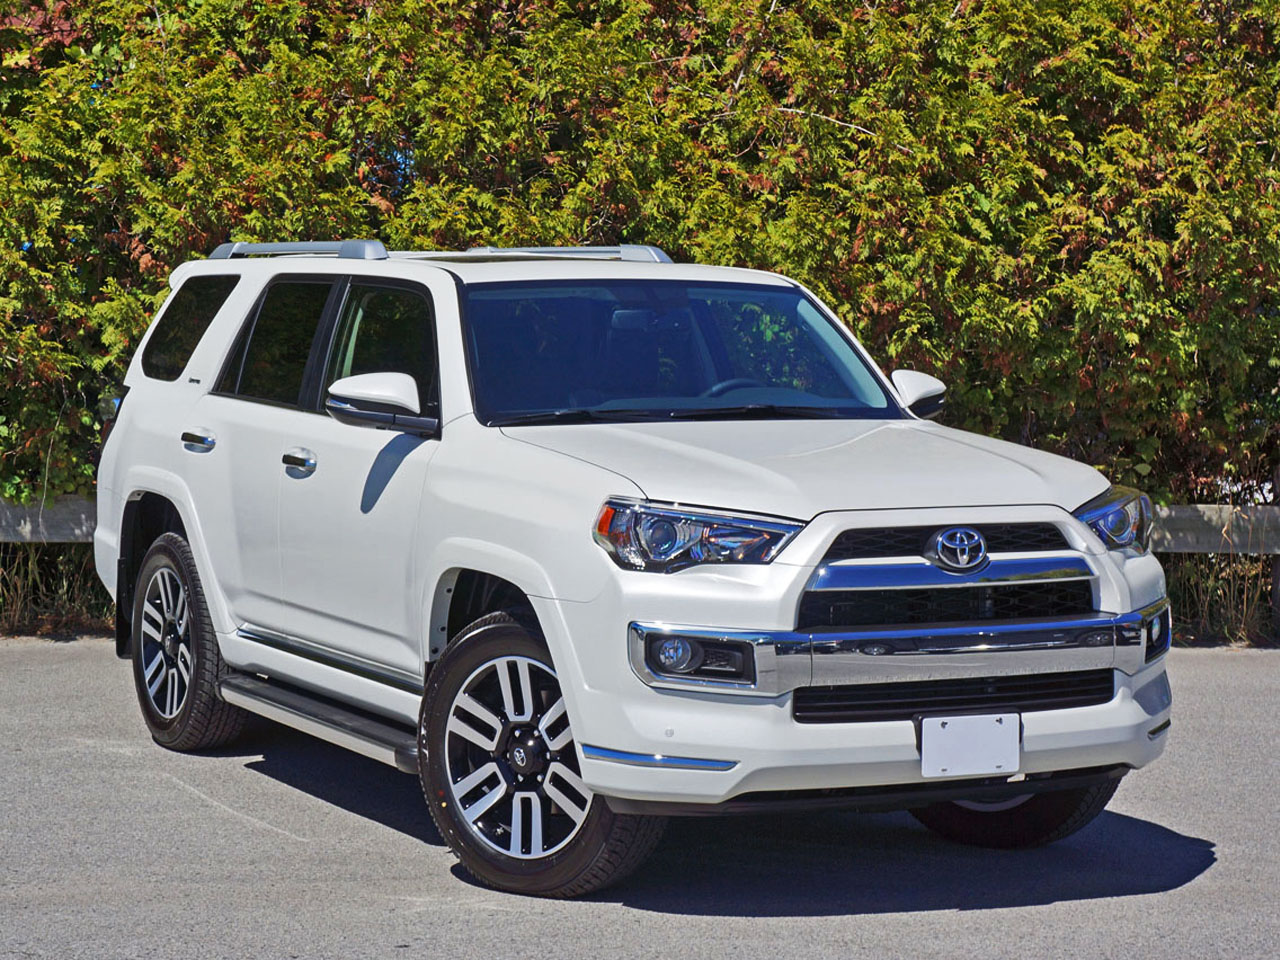 2015 toyota 4runner limited road test review | carcostcanada